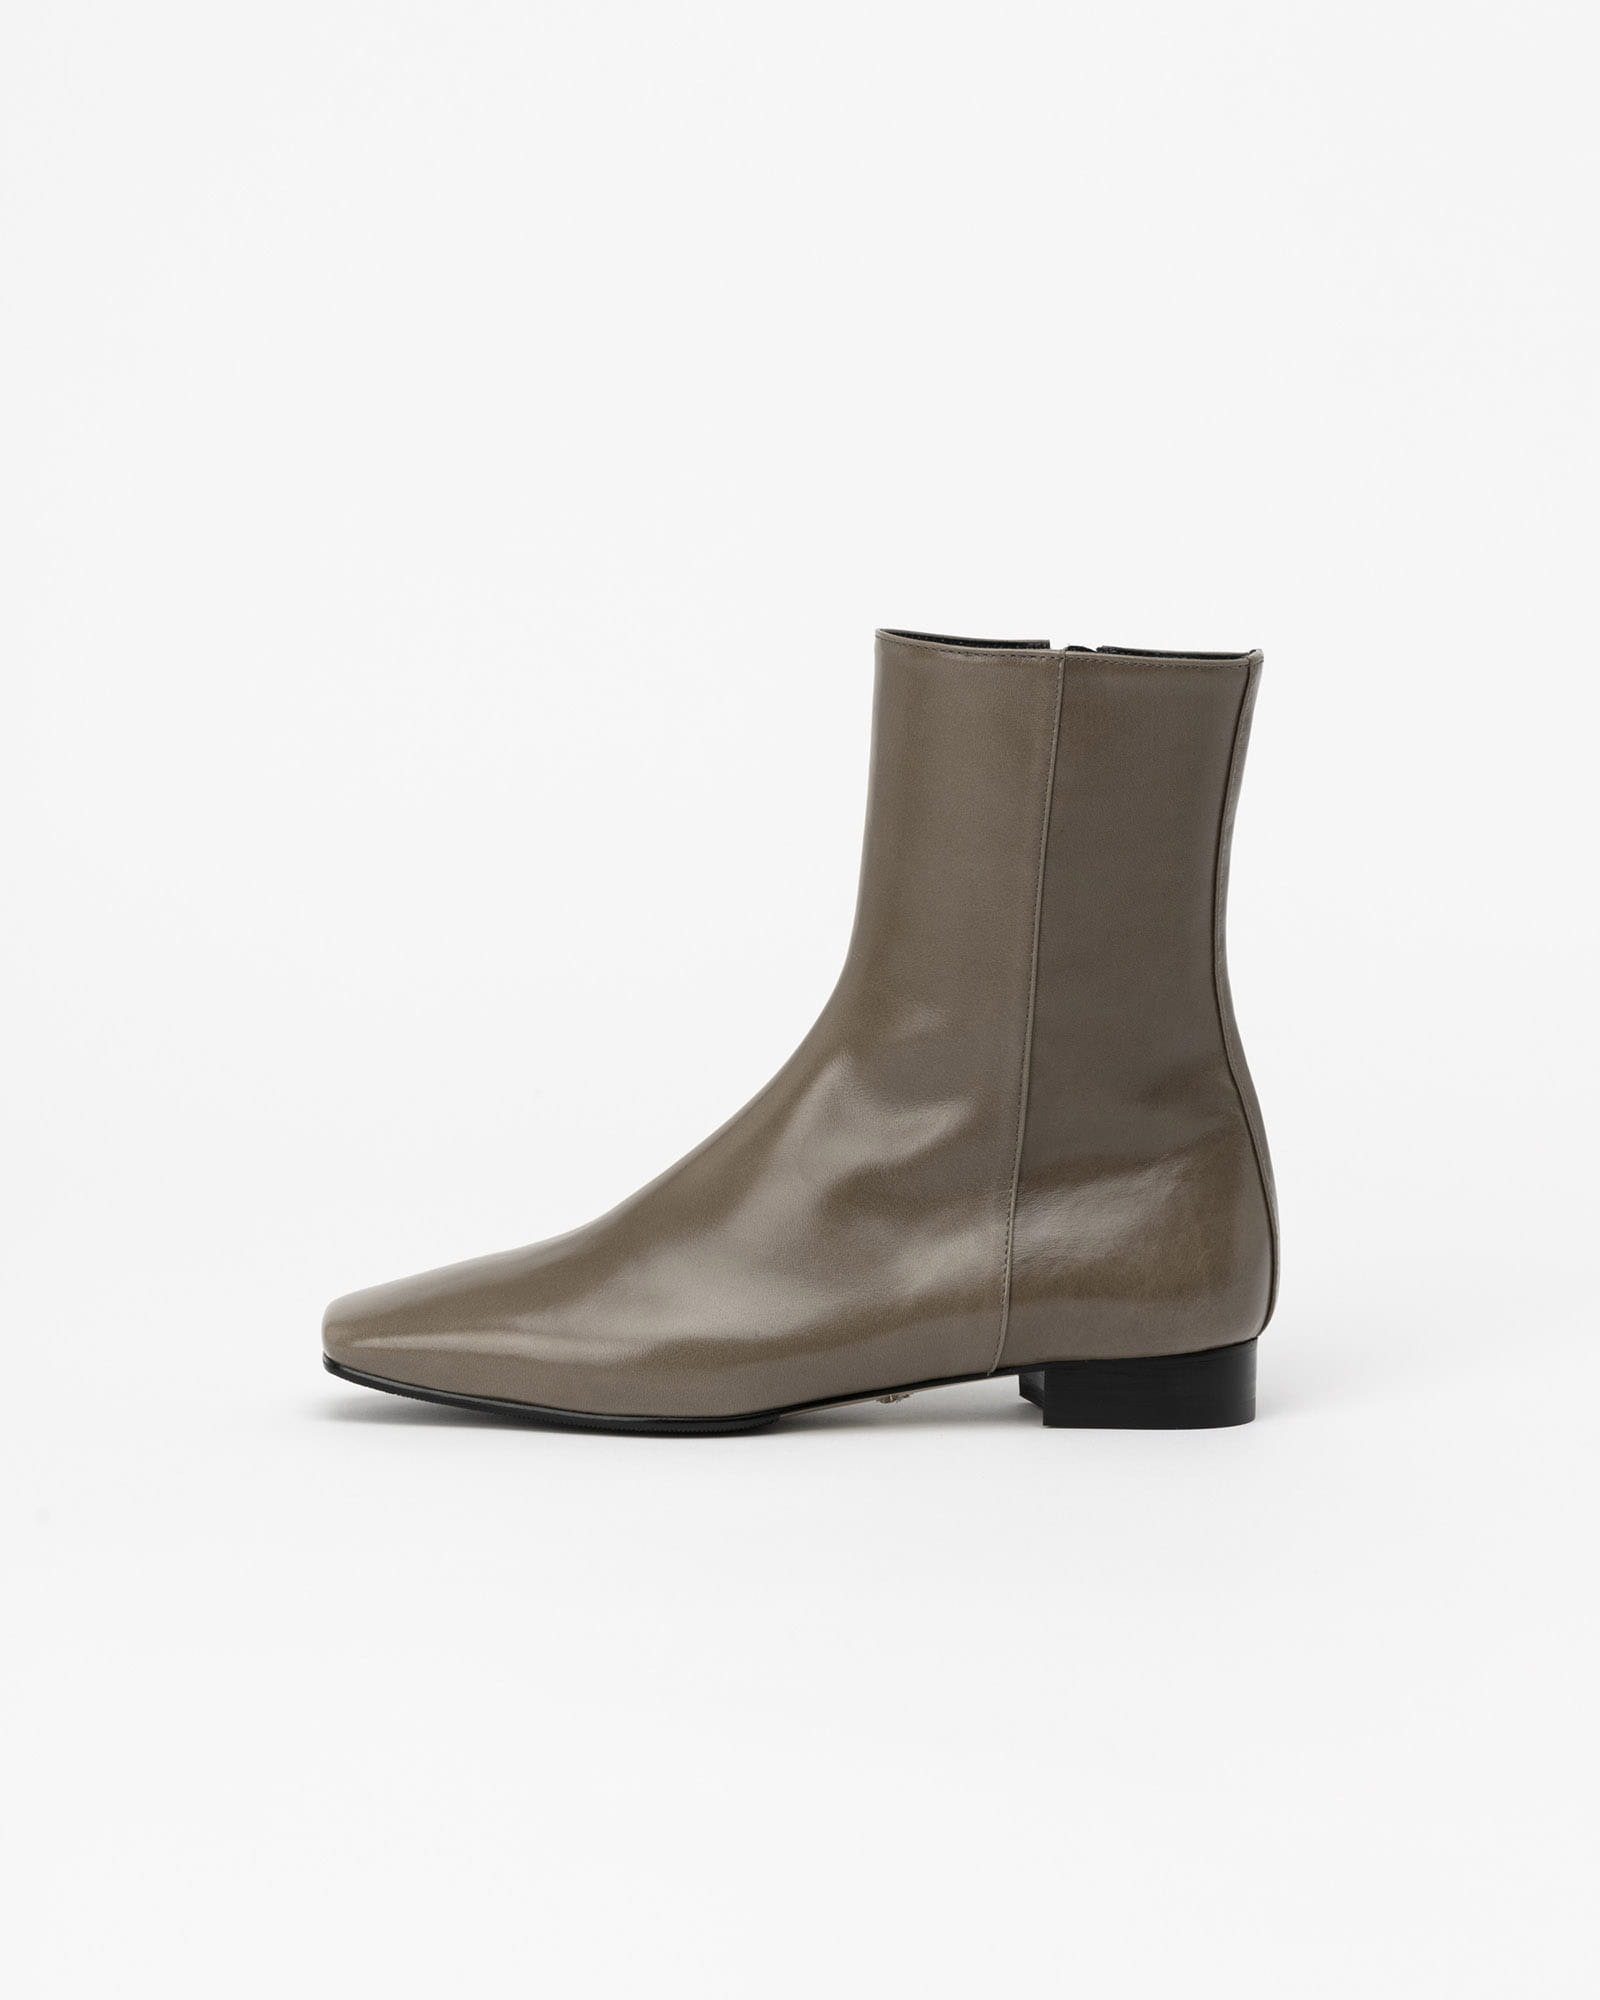 Sologram Flat Boots in Textured Khaki